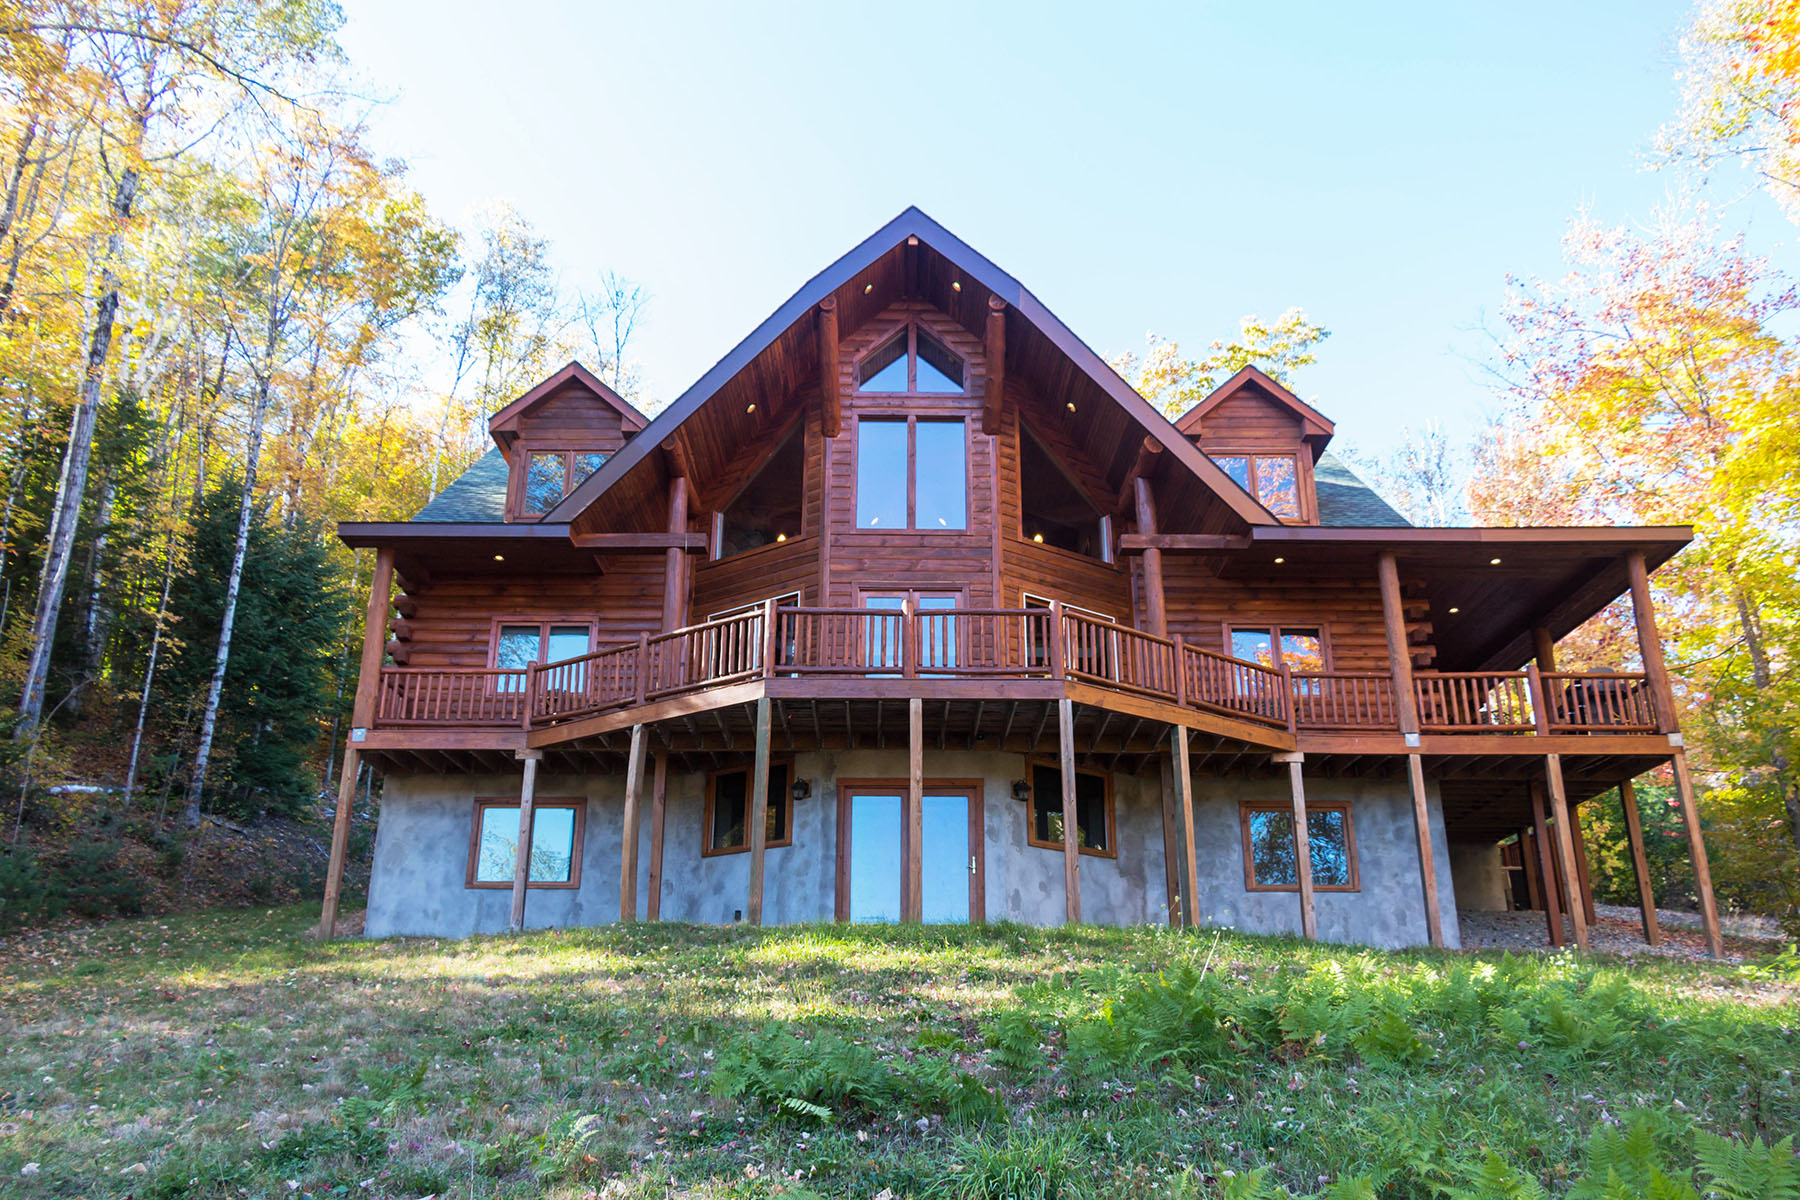 Single Family Home for Sale at Gore Mountain Log Home 35 Evergreen Way North Creek, New York, 12853 United States